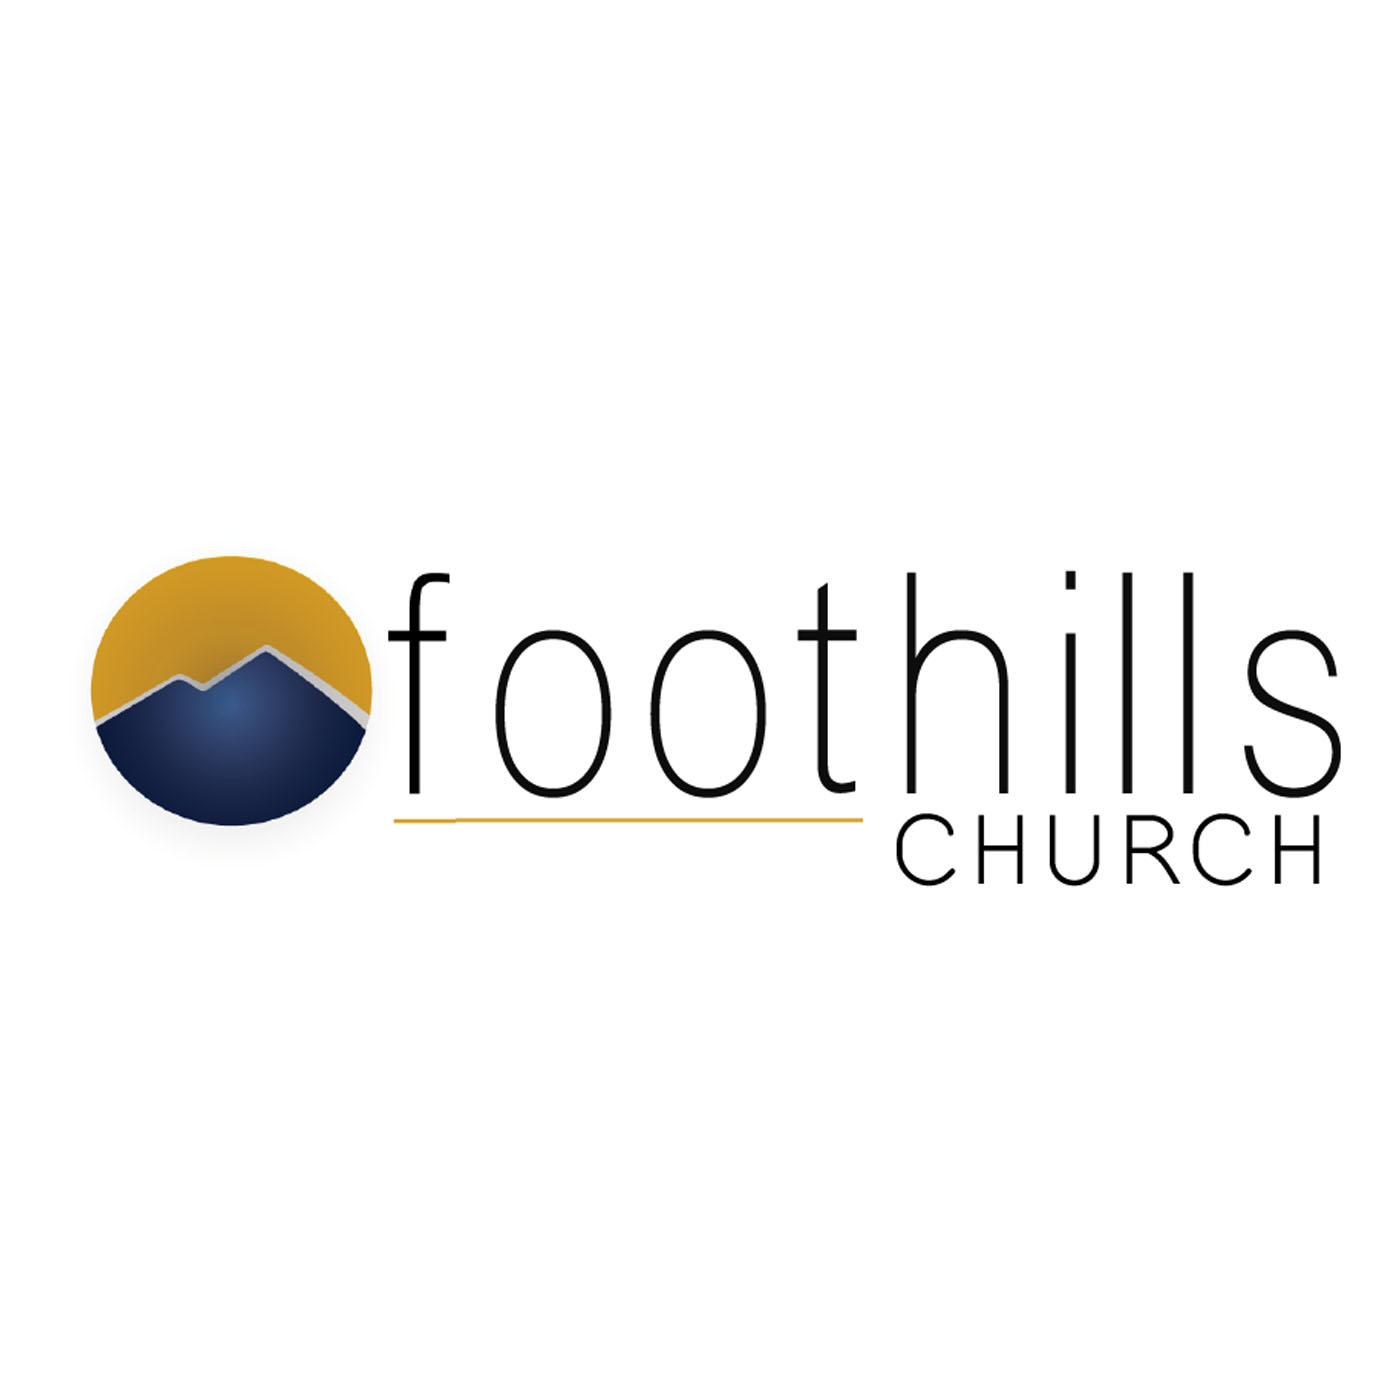 Sermons - Foothills church